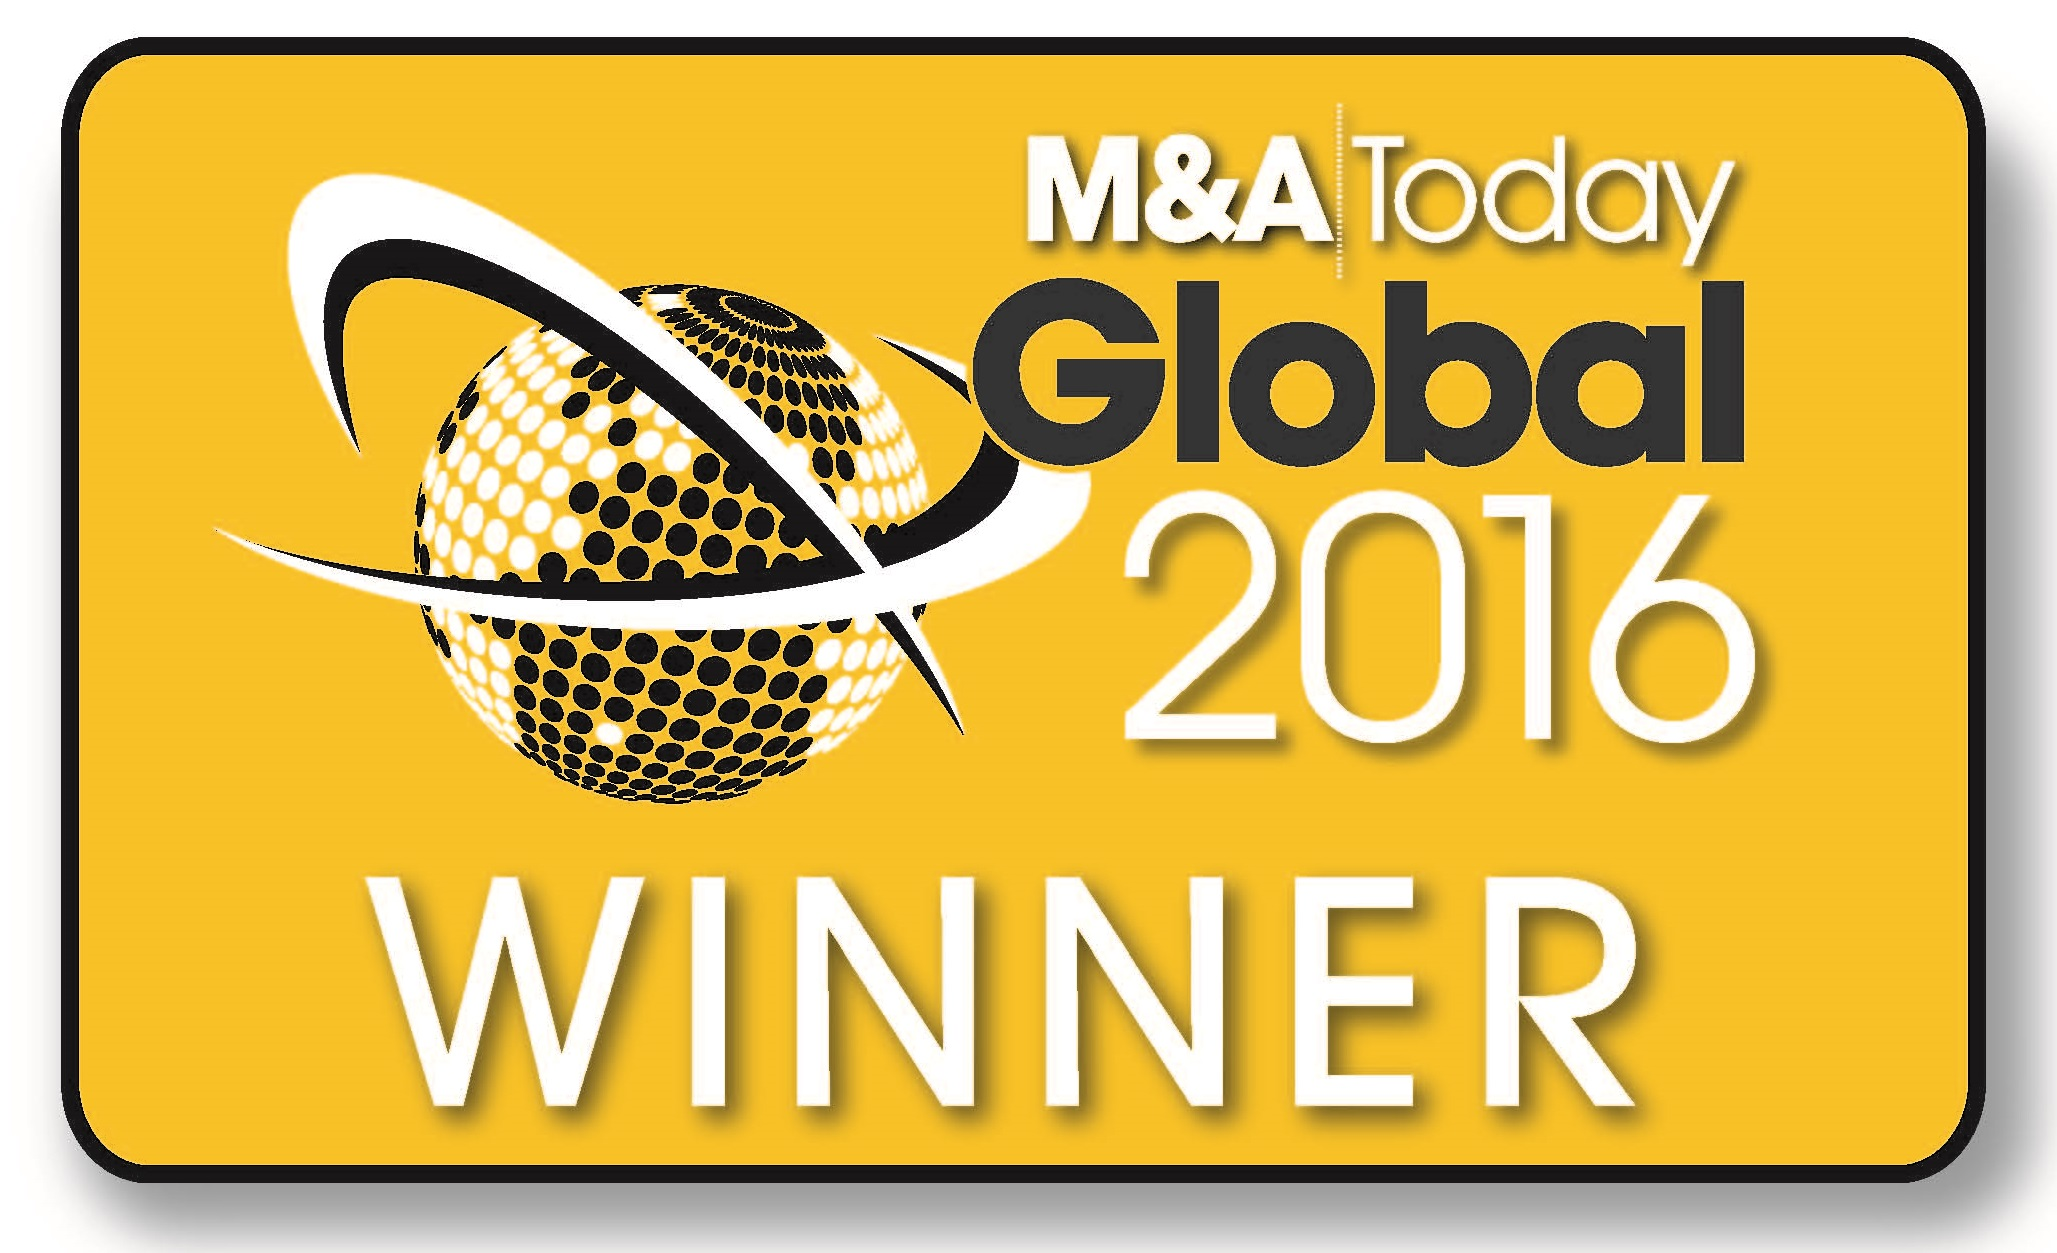 M&A / Today Global Awards « Banking »